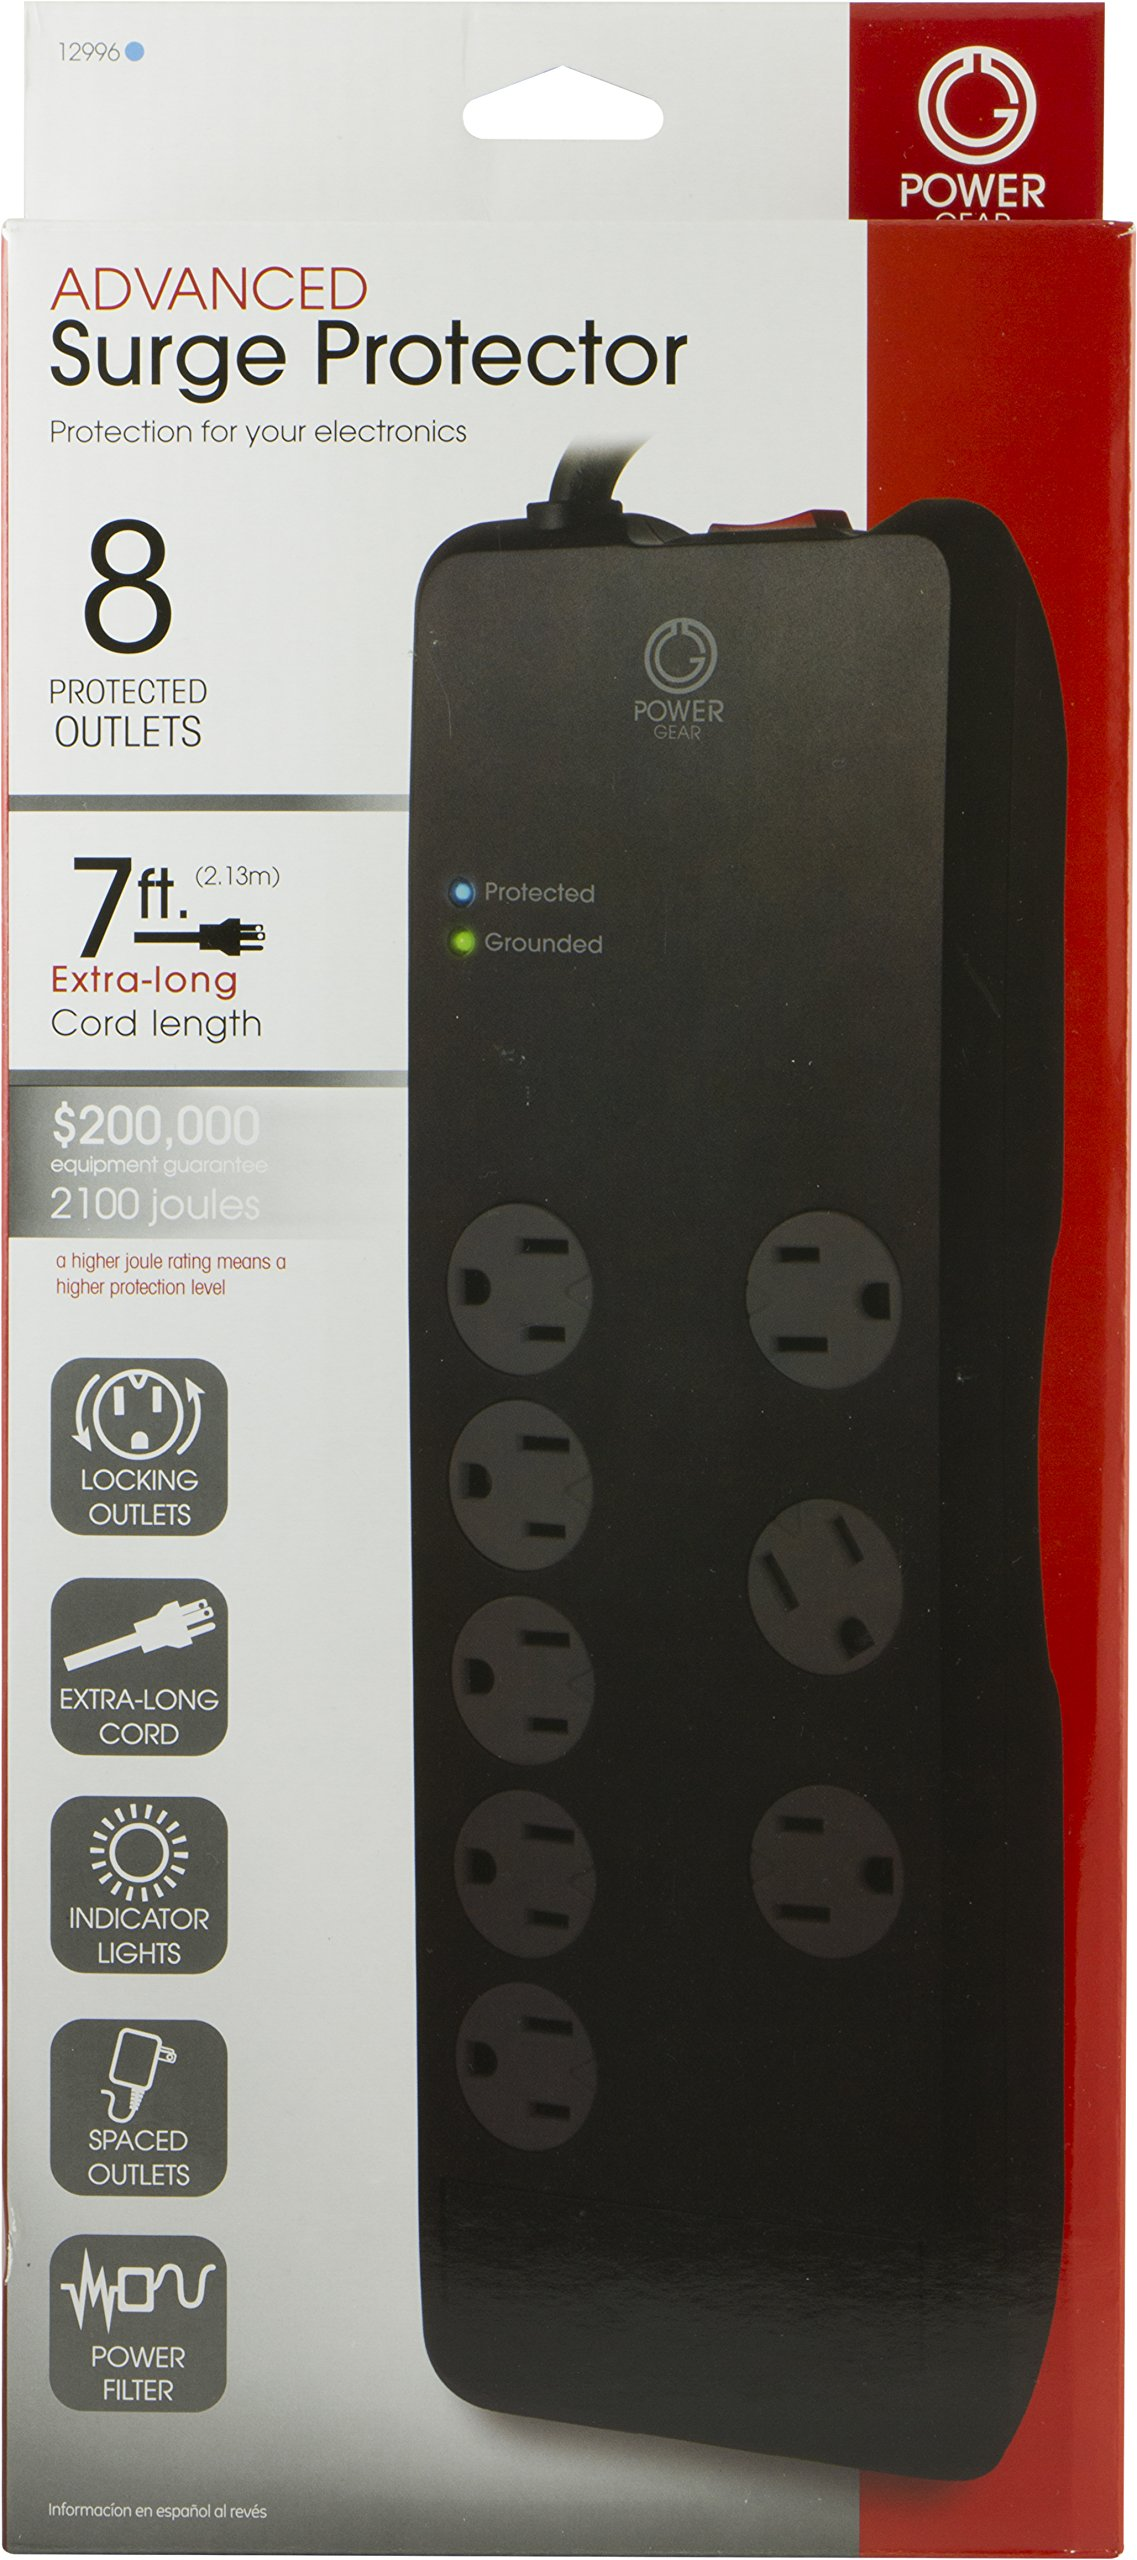 Power Gear 8 Outlet Power Strip Surge Protector, 7 Ft Extension Cord, 2100 Joules, Twist-to-Close Safety Outlet Covers, 3 Adapter-Spaced Outlets, On/Off Switch, Automatic Shutdown, Black, 12996 by Power Gear (Image #1)